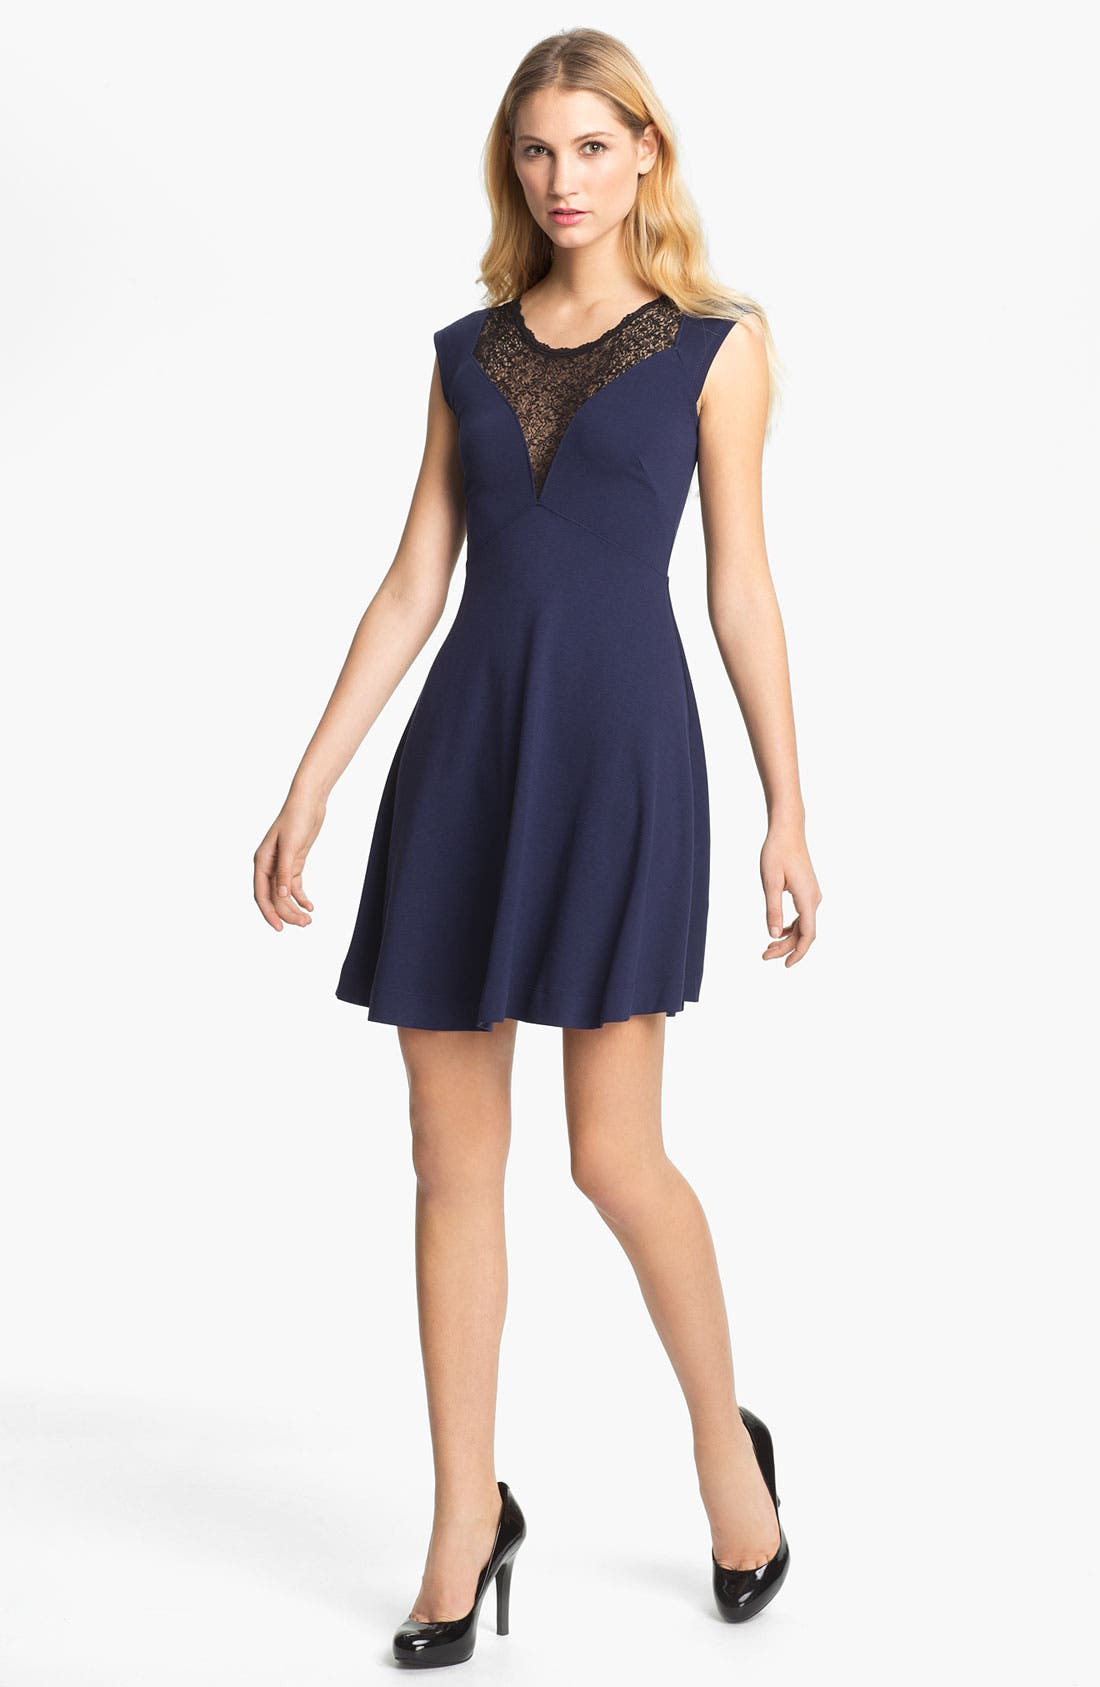 Alternate Image 1 Selected - French Connection 'Alicia' Lace Yoke Skater Dress